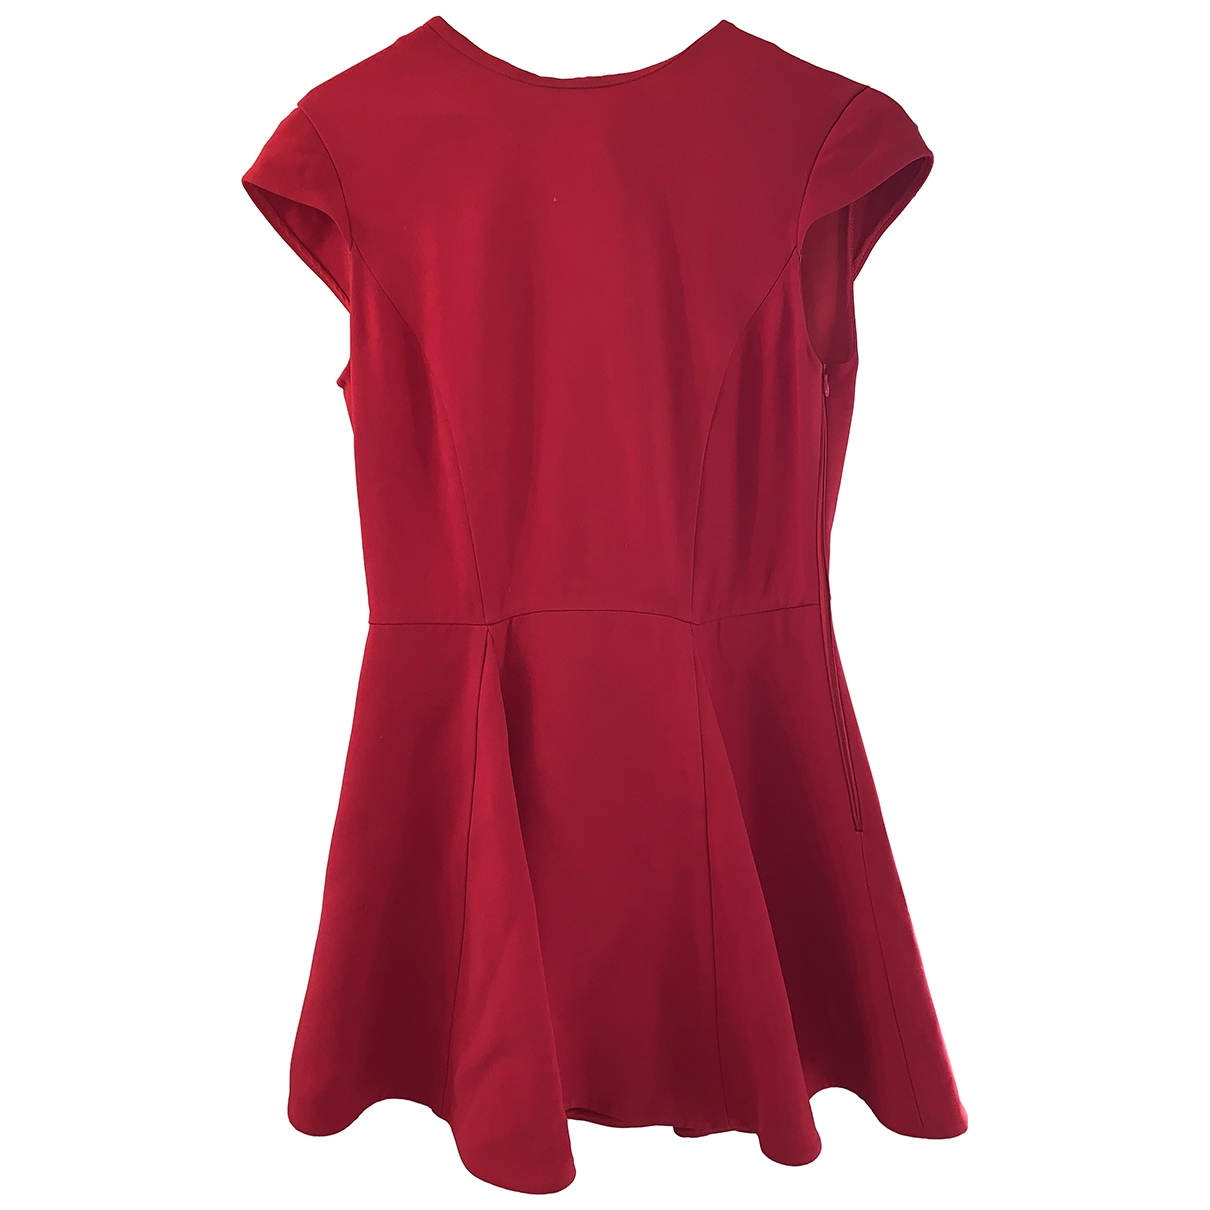 Miu Miu \N Red dress for Women 40 IT